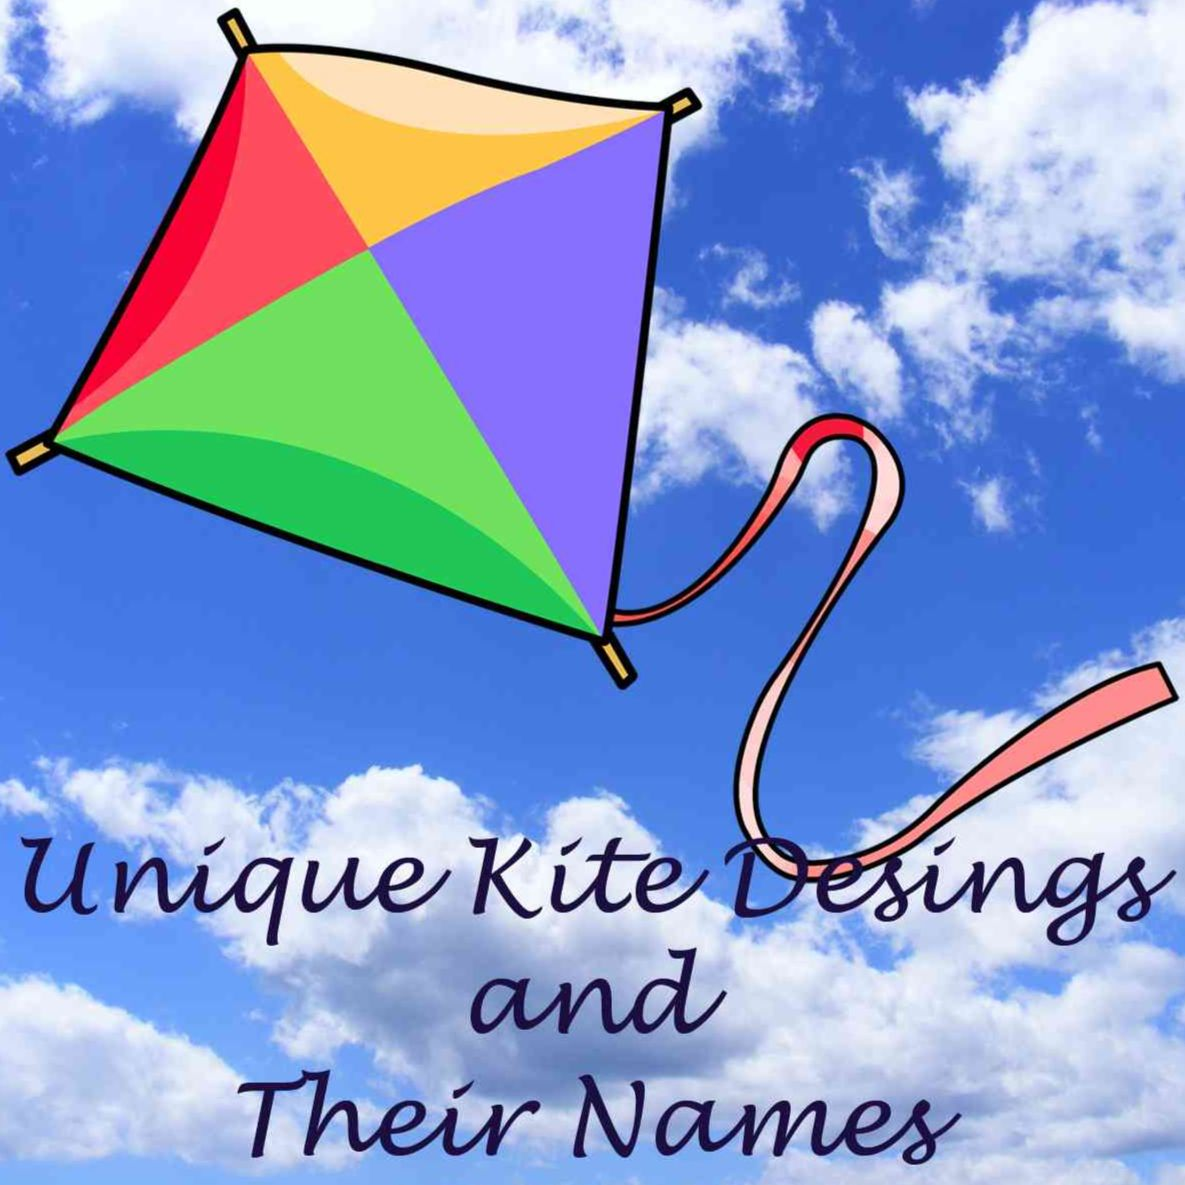 Unique Kite Designs